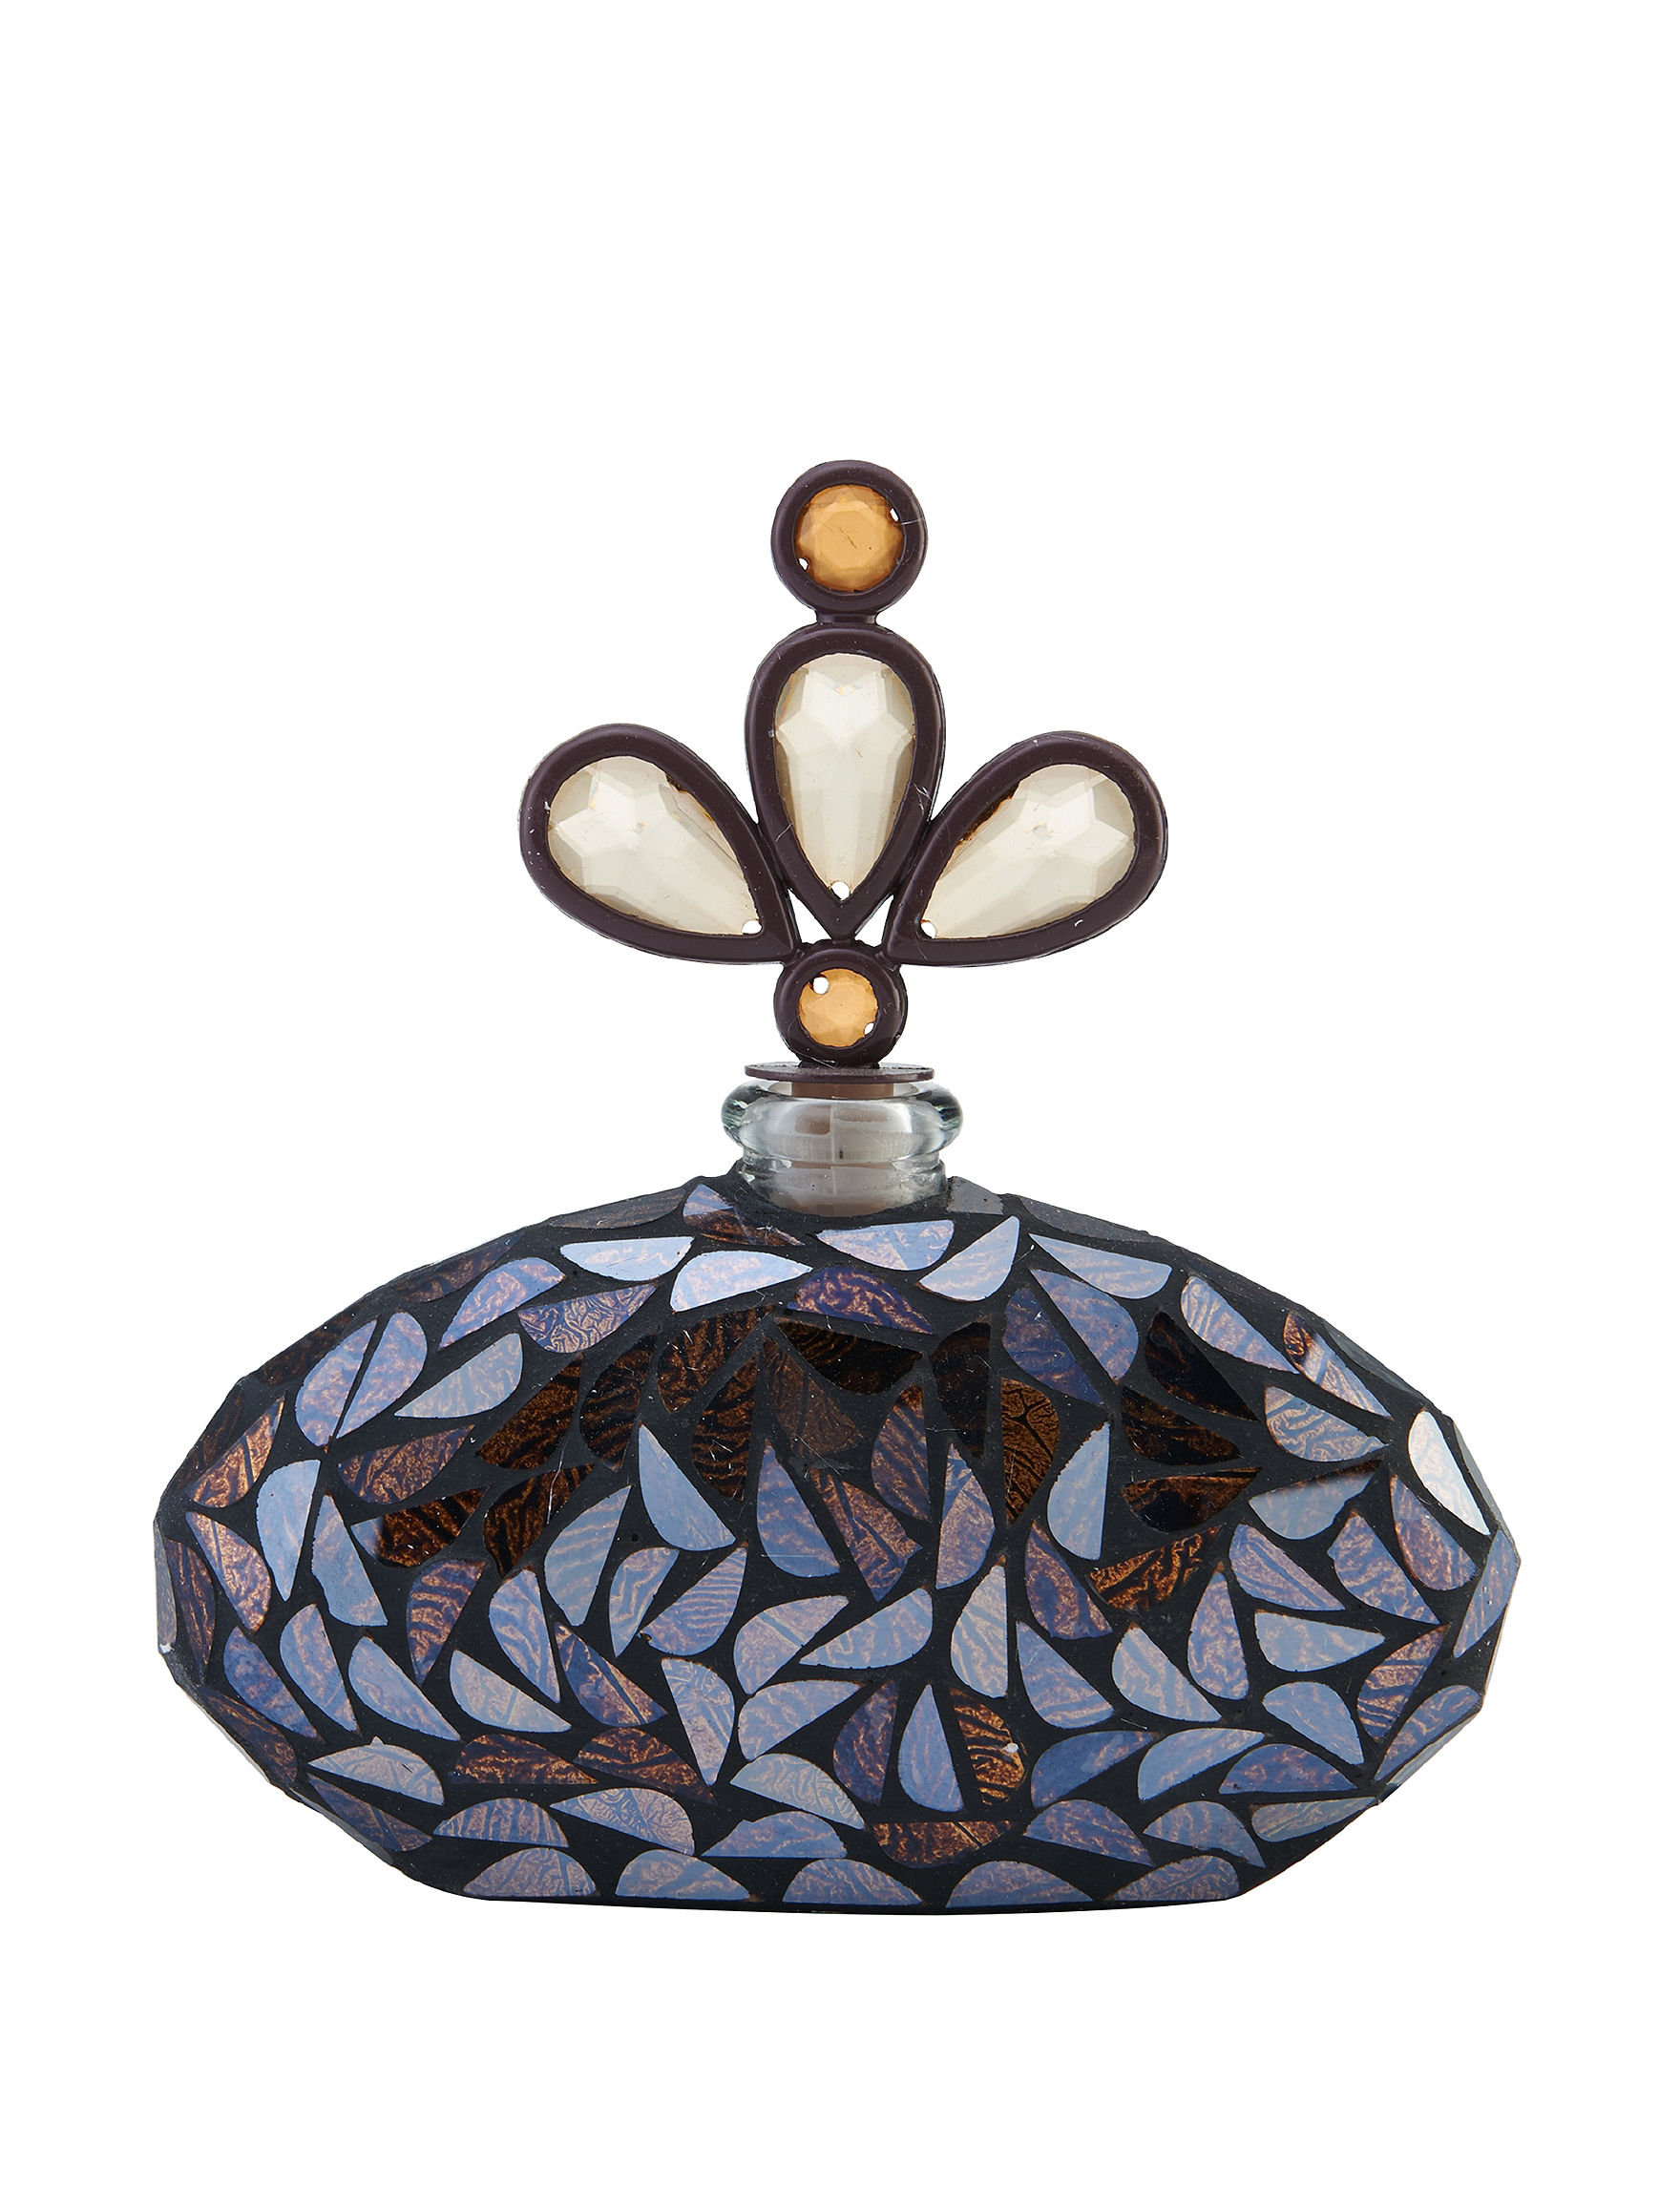 Bombay Burgandy Decorative Objects Home Accents